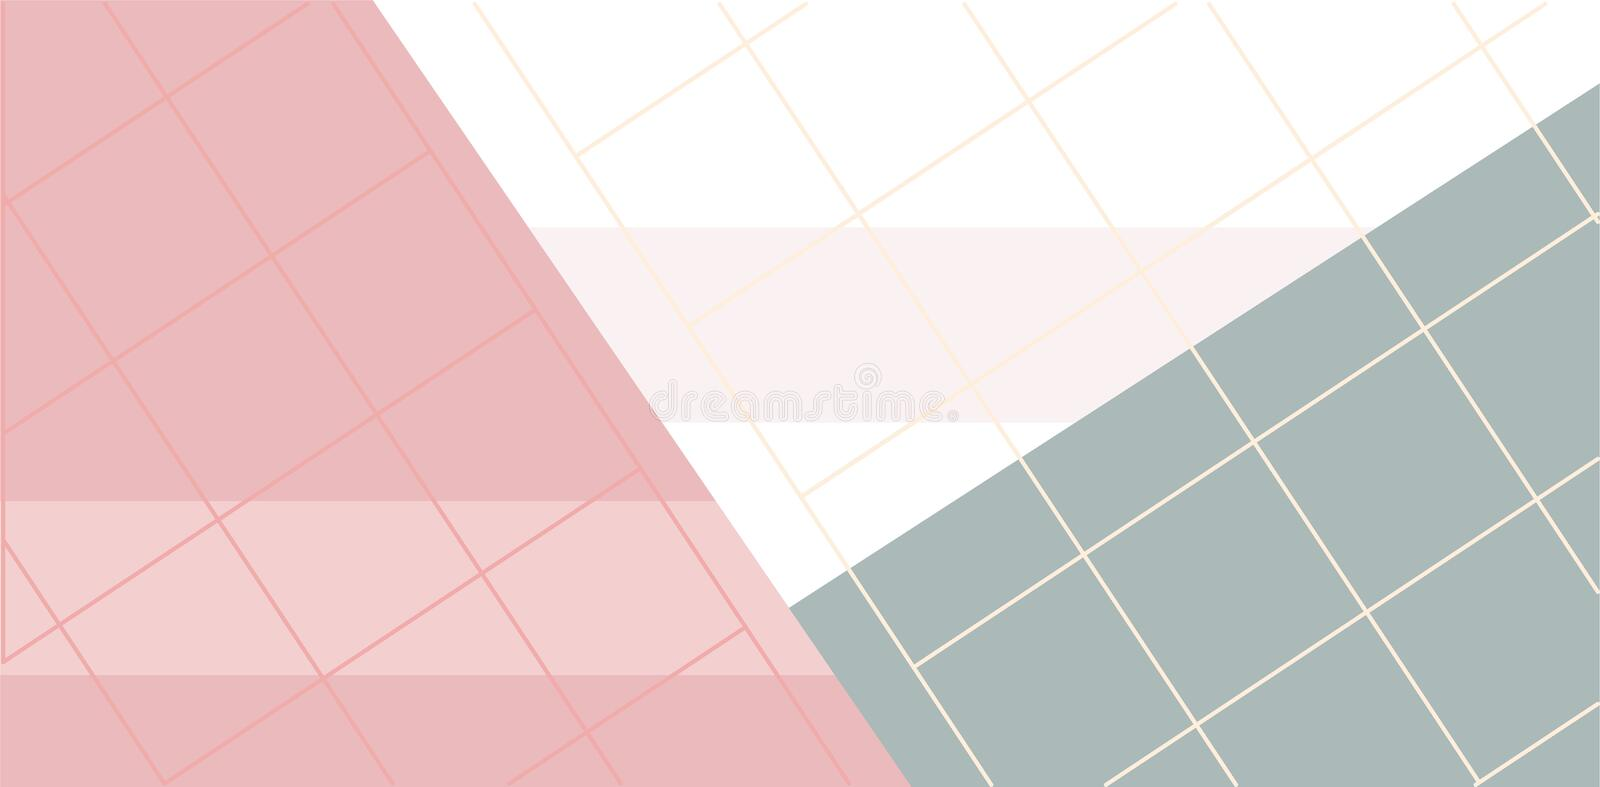 Linear grid with geometric shapes, squares, triangle.Abstract art background with geometric elements. Vector illustration royalty free illustration